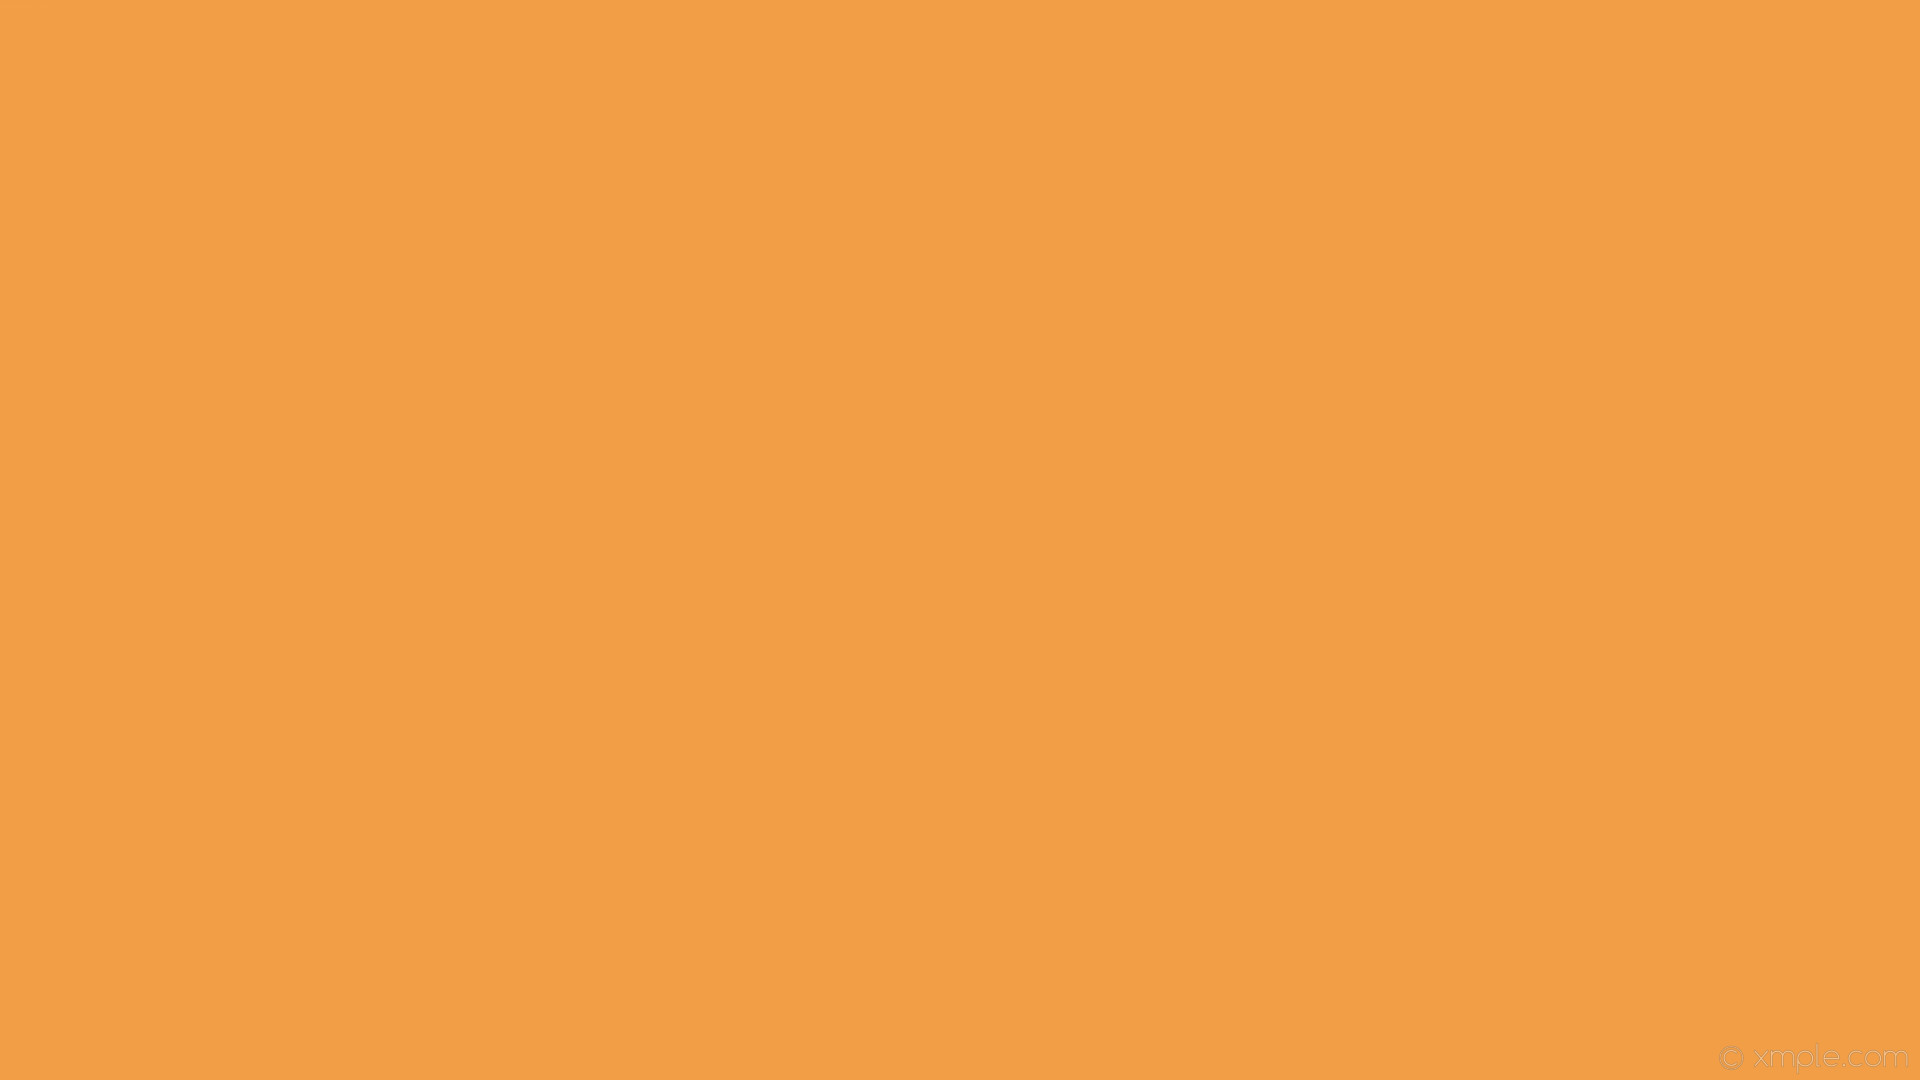 1920x1080 wallpaper single orange plain one colour solid color #f19e46